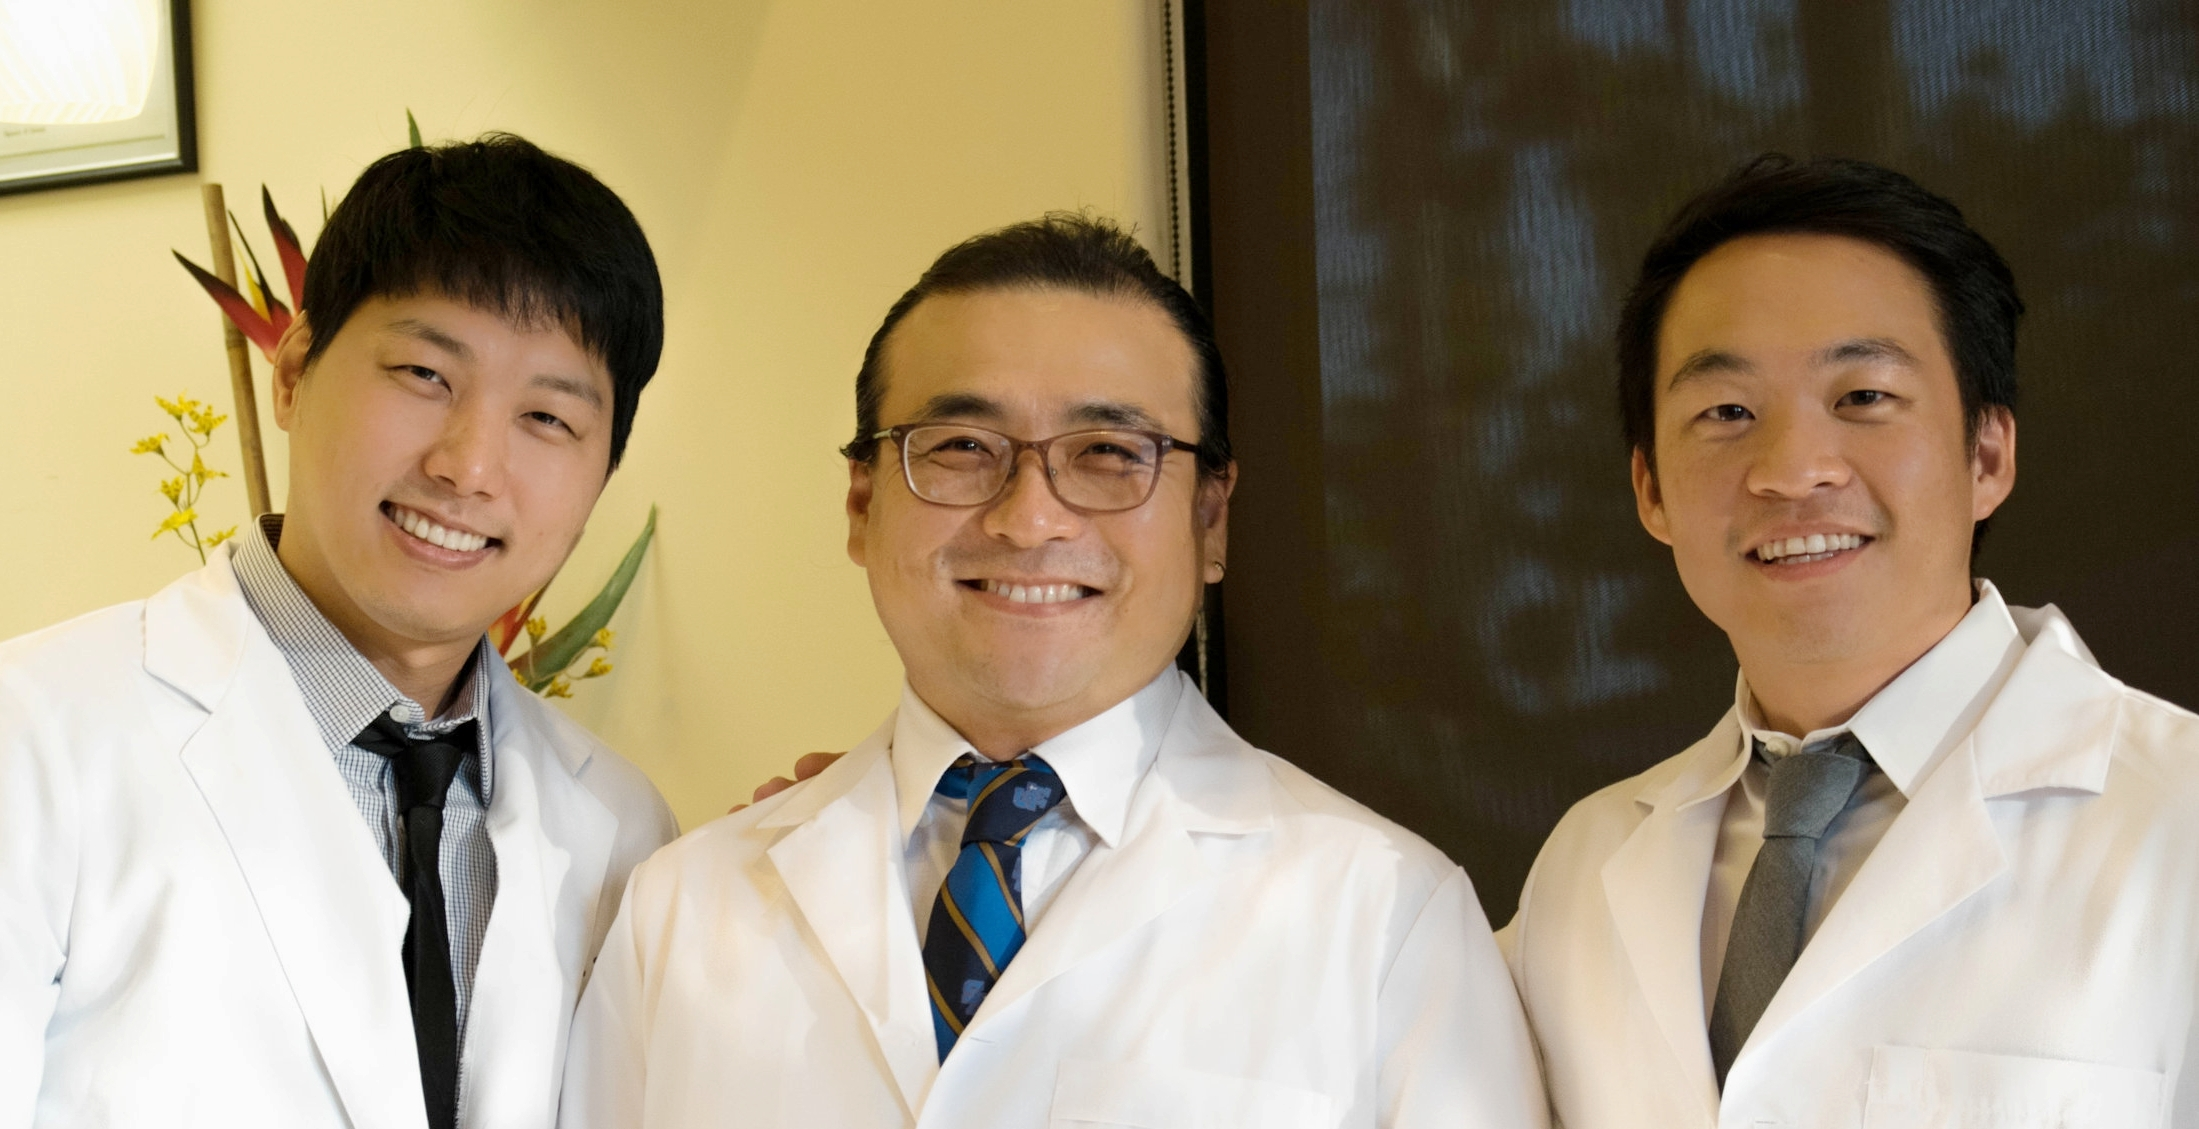 OUR PROUD DOCTORS    :    Dr. Kiwon Youn (Left),   Dr. Peter Sounghoon Cho (Middle),   Dr. Jonathan Song (Right)